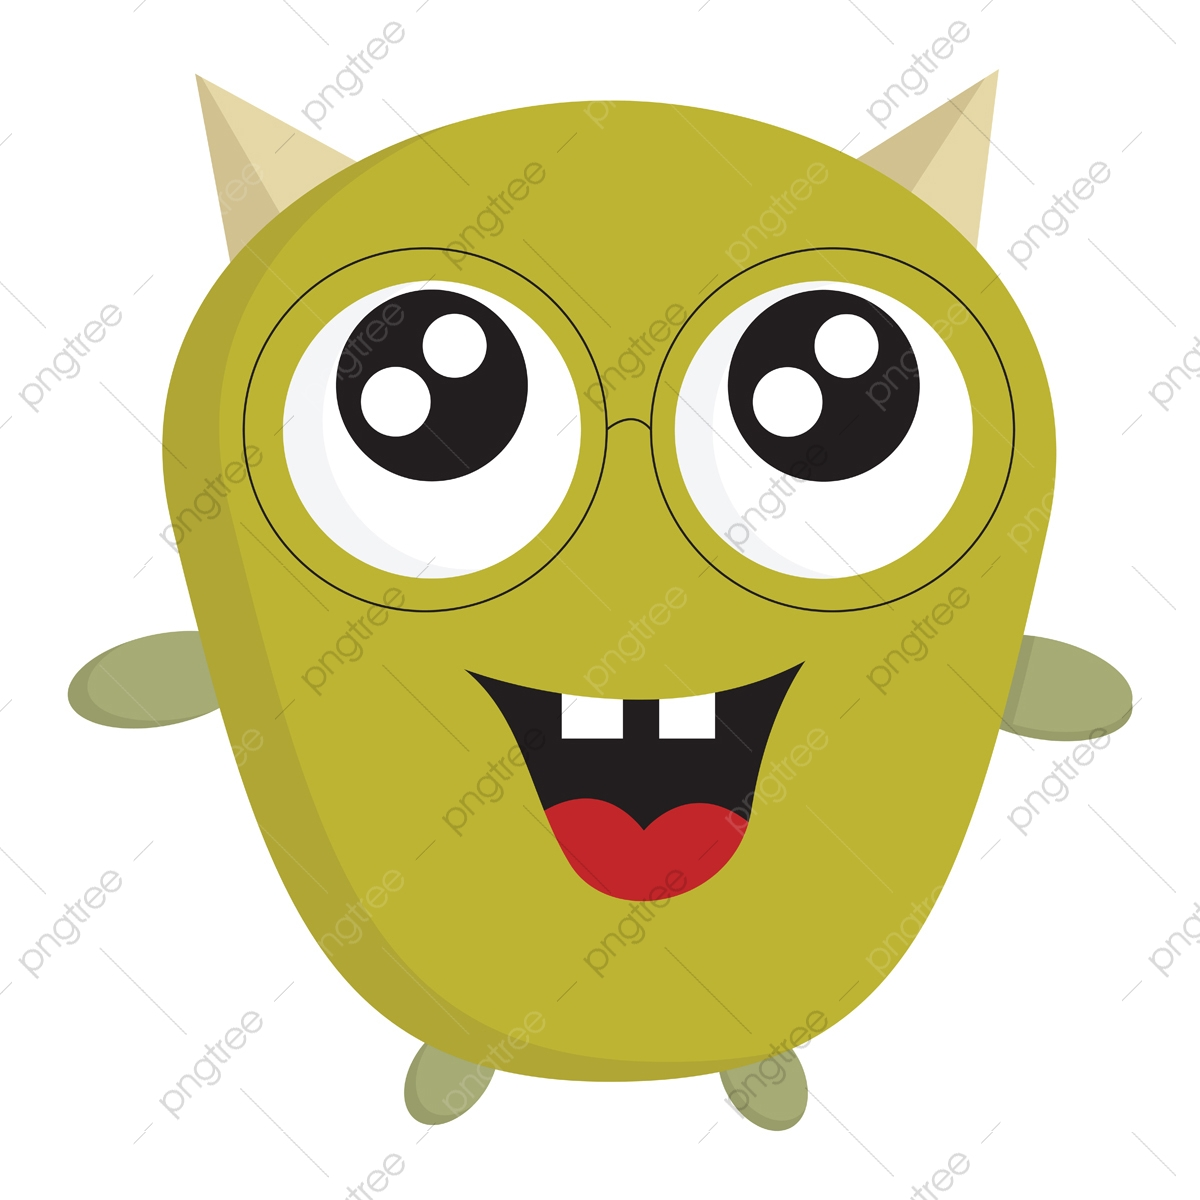 cute baby monster clipart download - cute baby monsters clipart PNG image  with transparent background | TOPpng